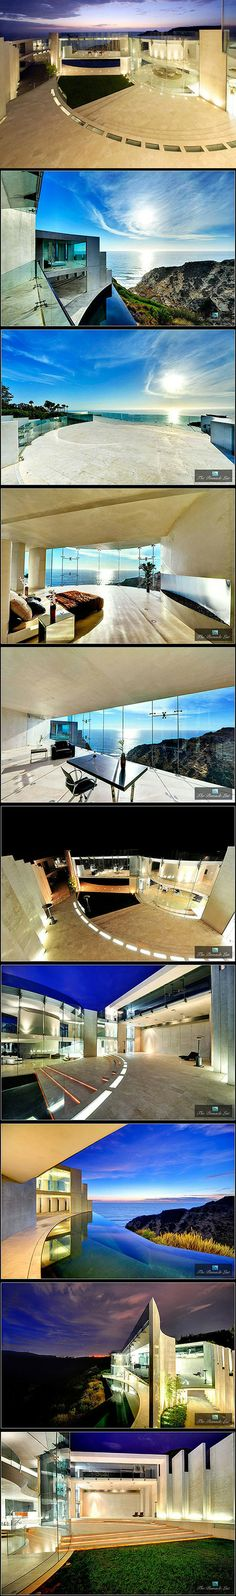 """The real-life Iron Man was inspired by the famous architect Wallace E. Cunningham. The 11,000-square-foot house in La Jolla, California is called """"The Razor"""" and took six years to build. It was completed in 2008 and features white polished concrete with spectacular panoramic windows designed to embrace sweeping ocean views. Did you think Tony would settle for anything less?"""